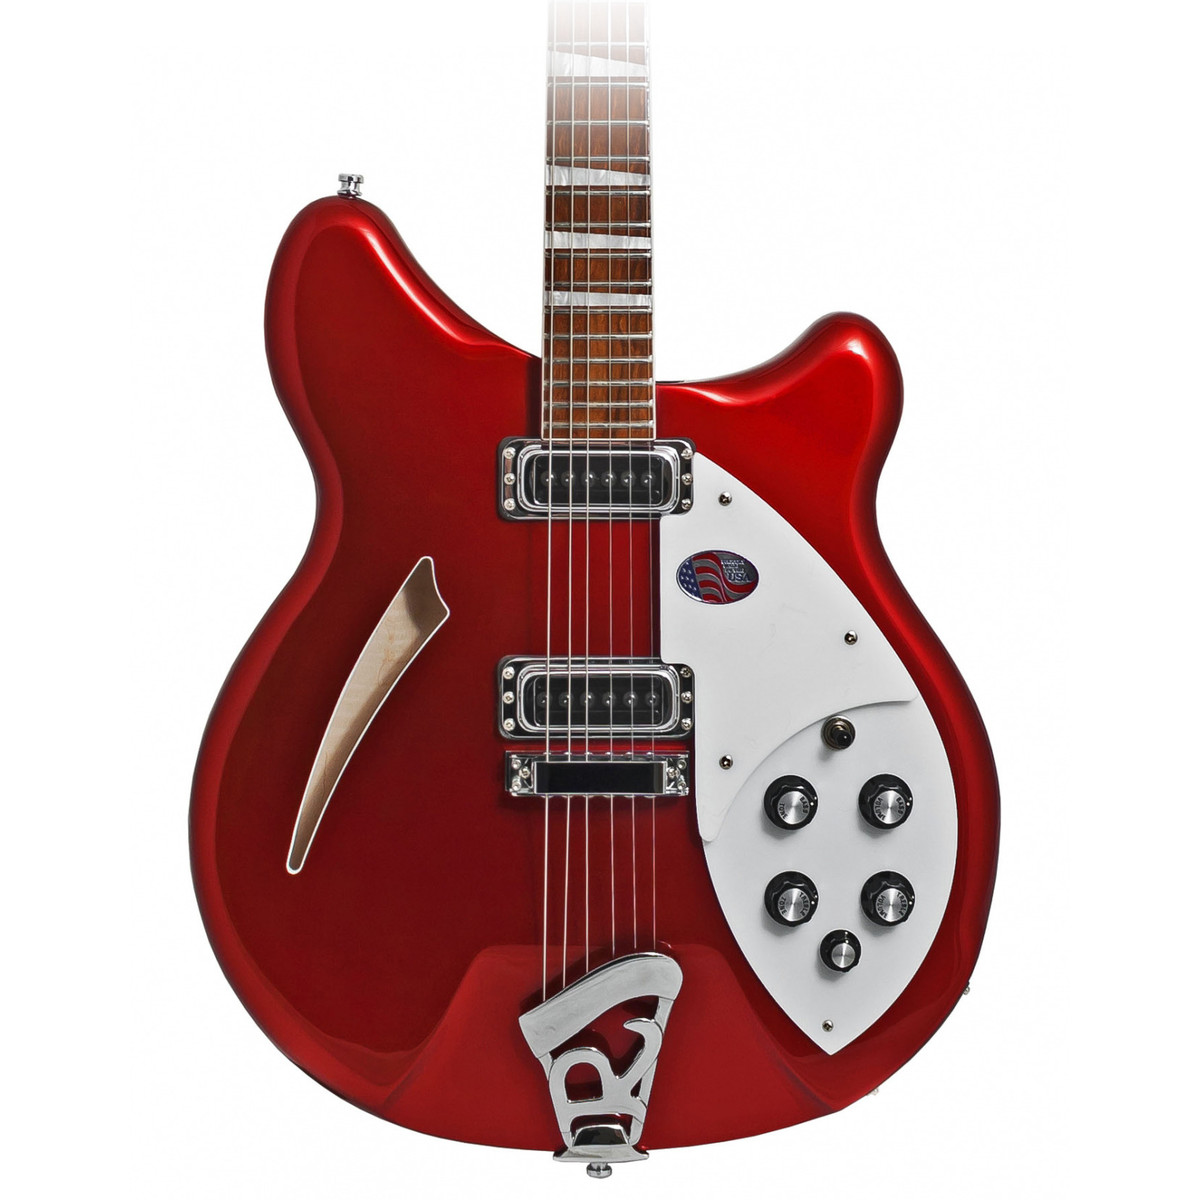 Rickenbacker 360 Ruby Red At Gear4music Com